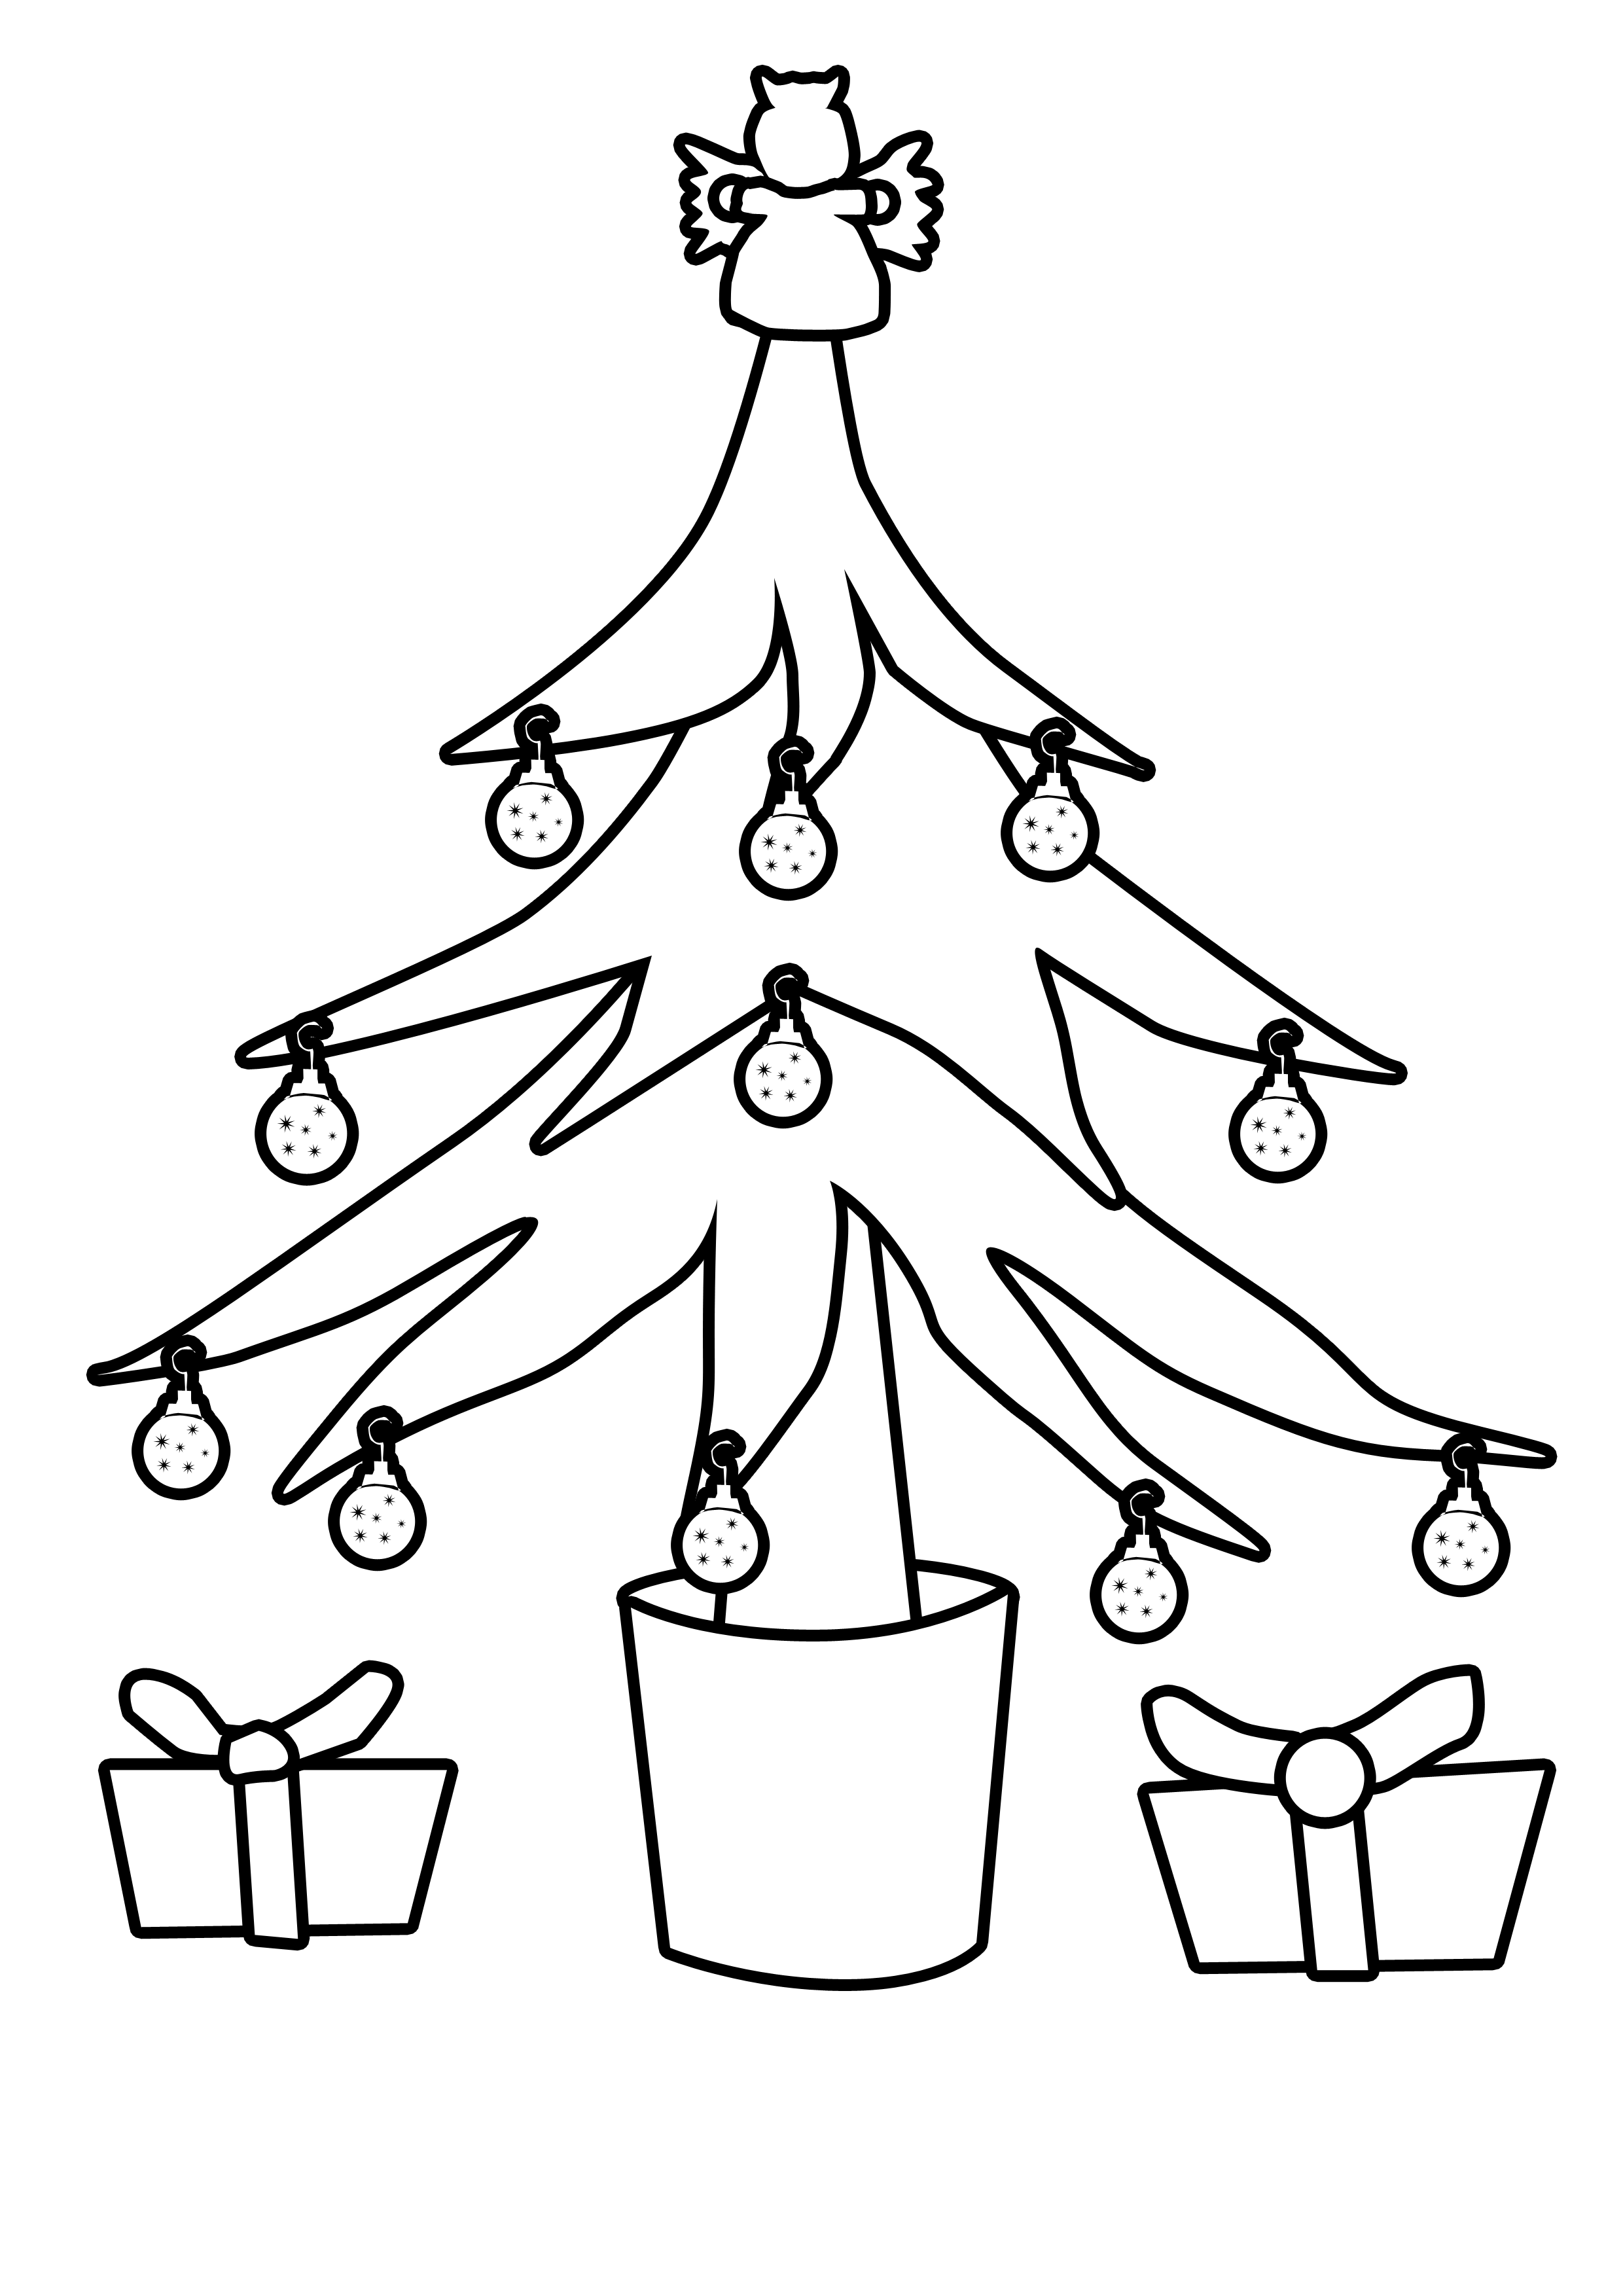 Falling Stars clipart xmas Tree collection christmas Christmas outline